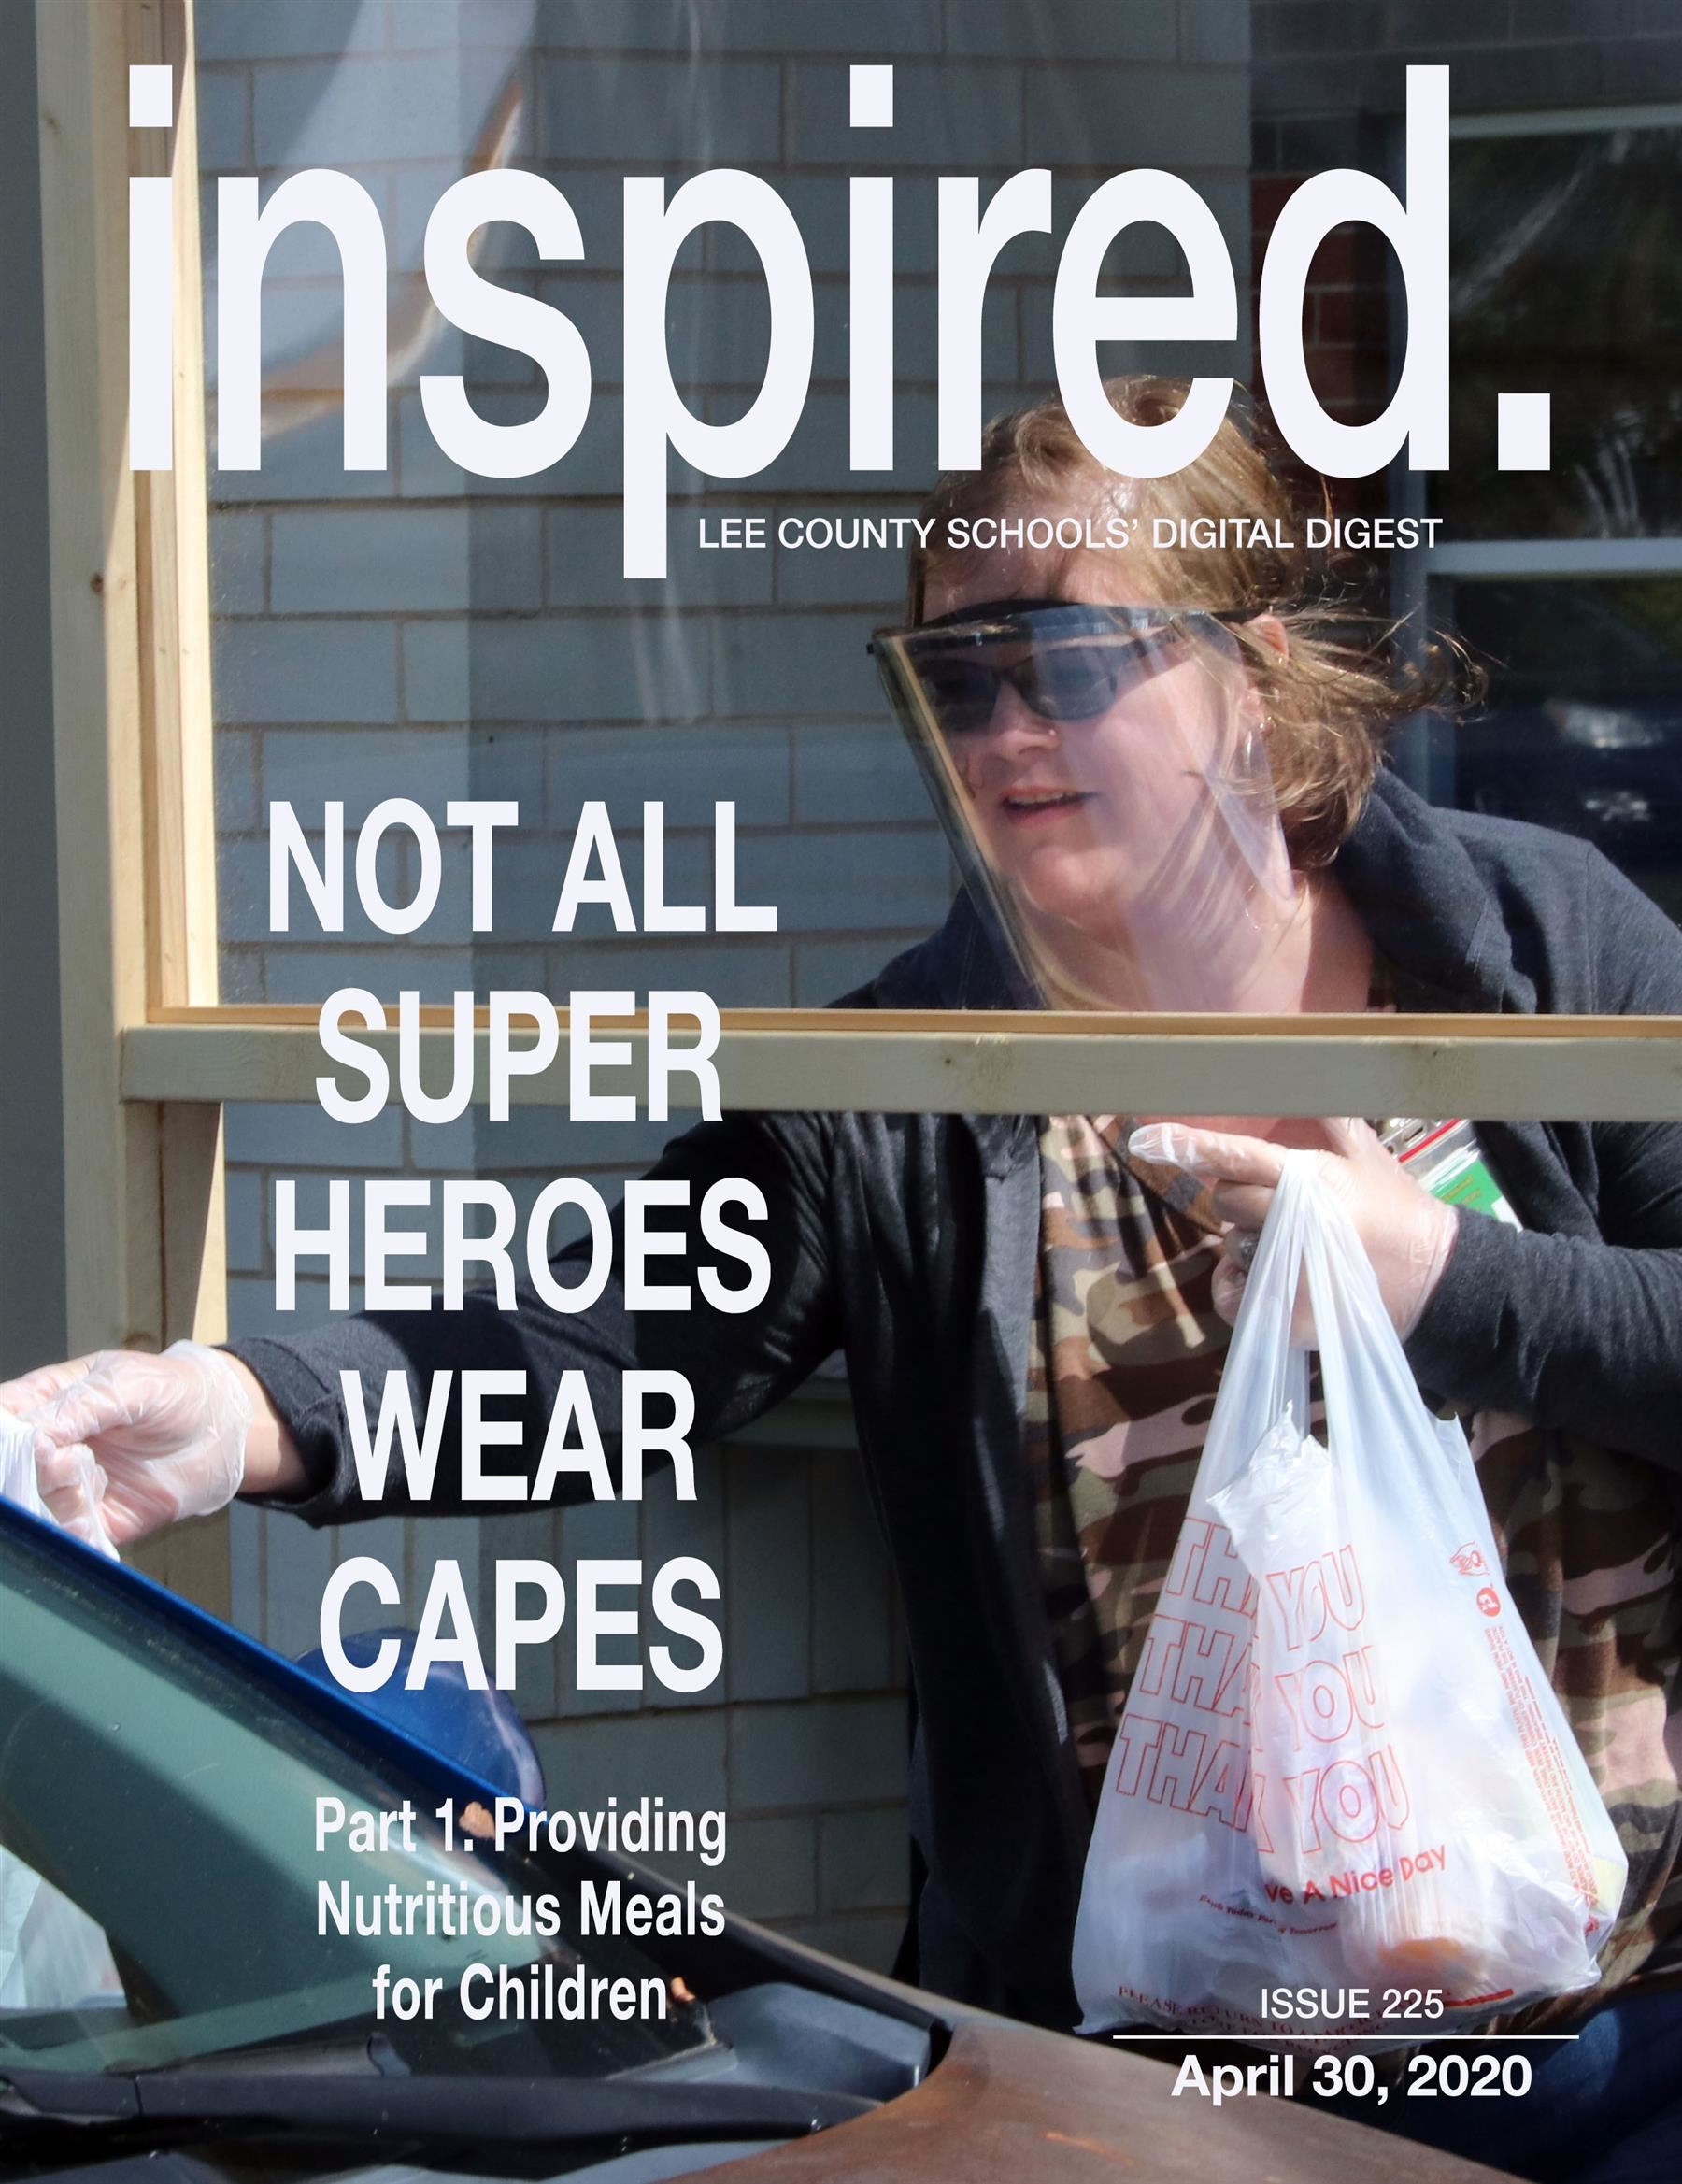 INSPIRED. Not All Super Heroes Wear Capes - Part 1. Providing Nutritious Meals for Children